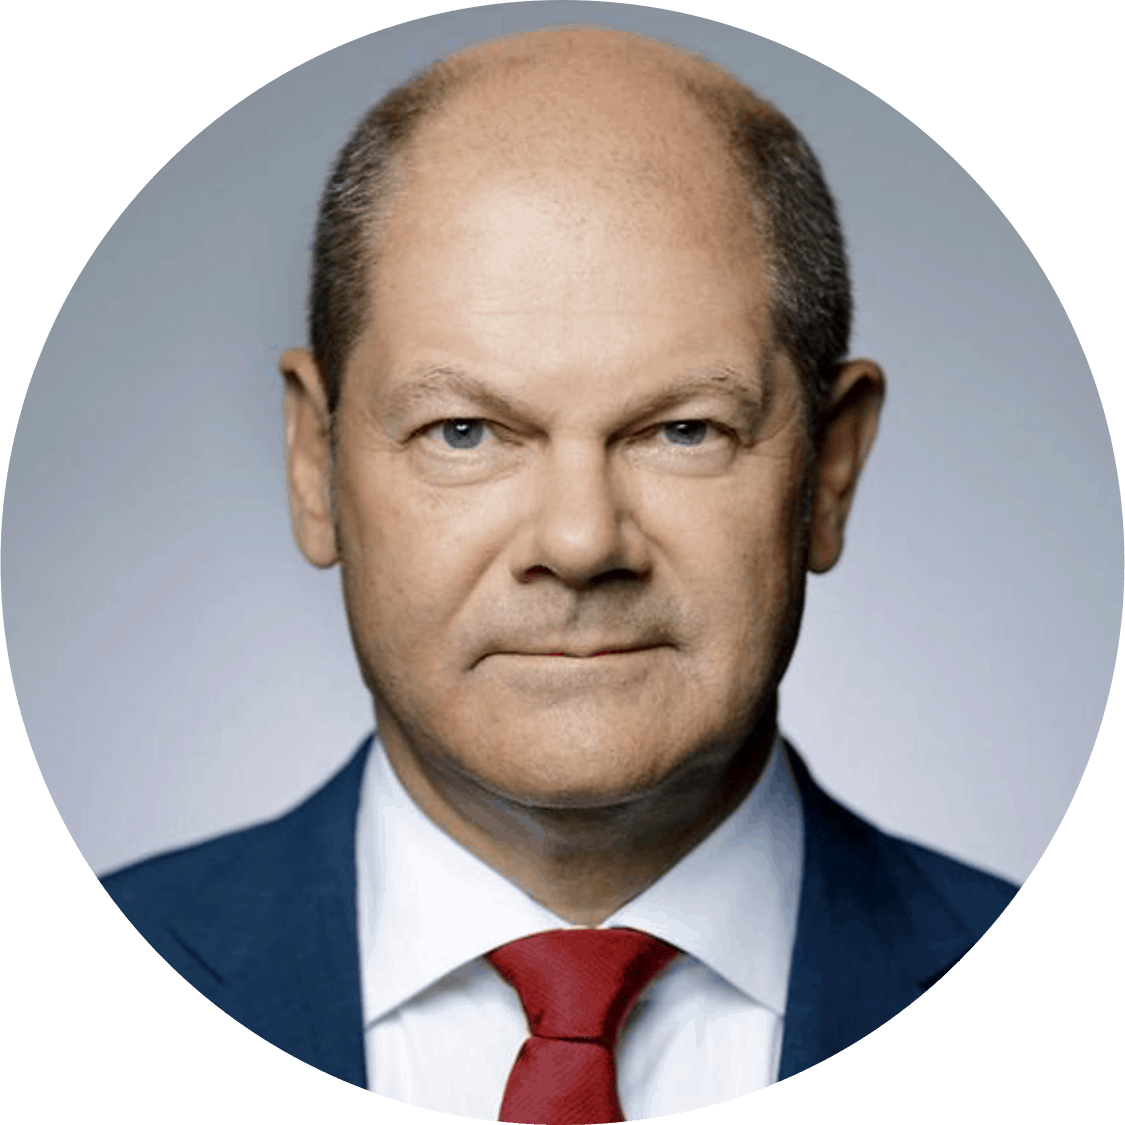 OLAF SCHOLZ  Federal Minister of Finance, Germany